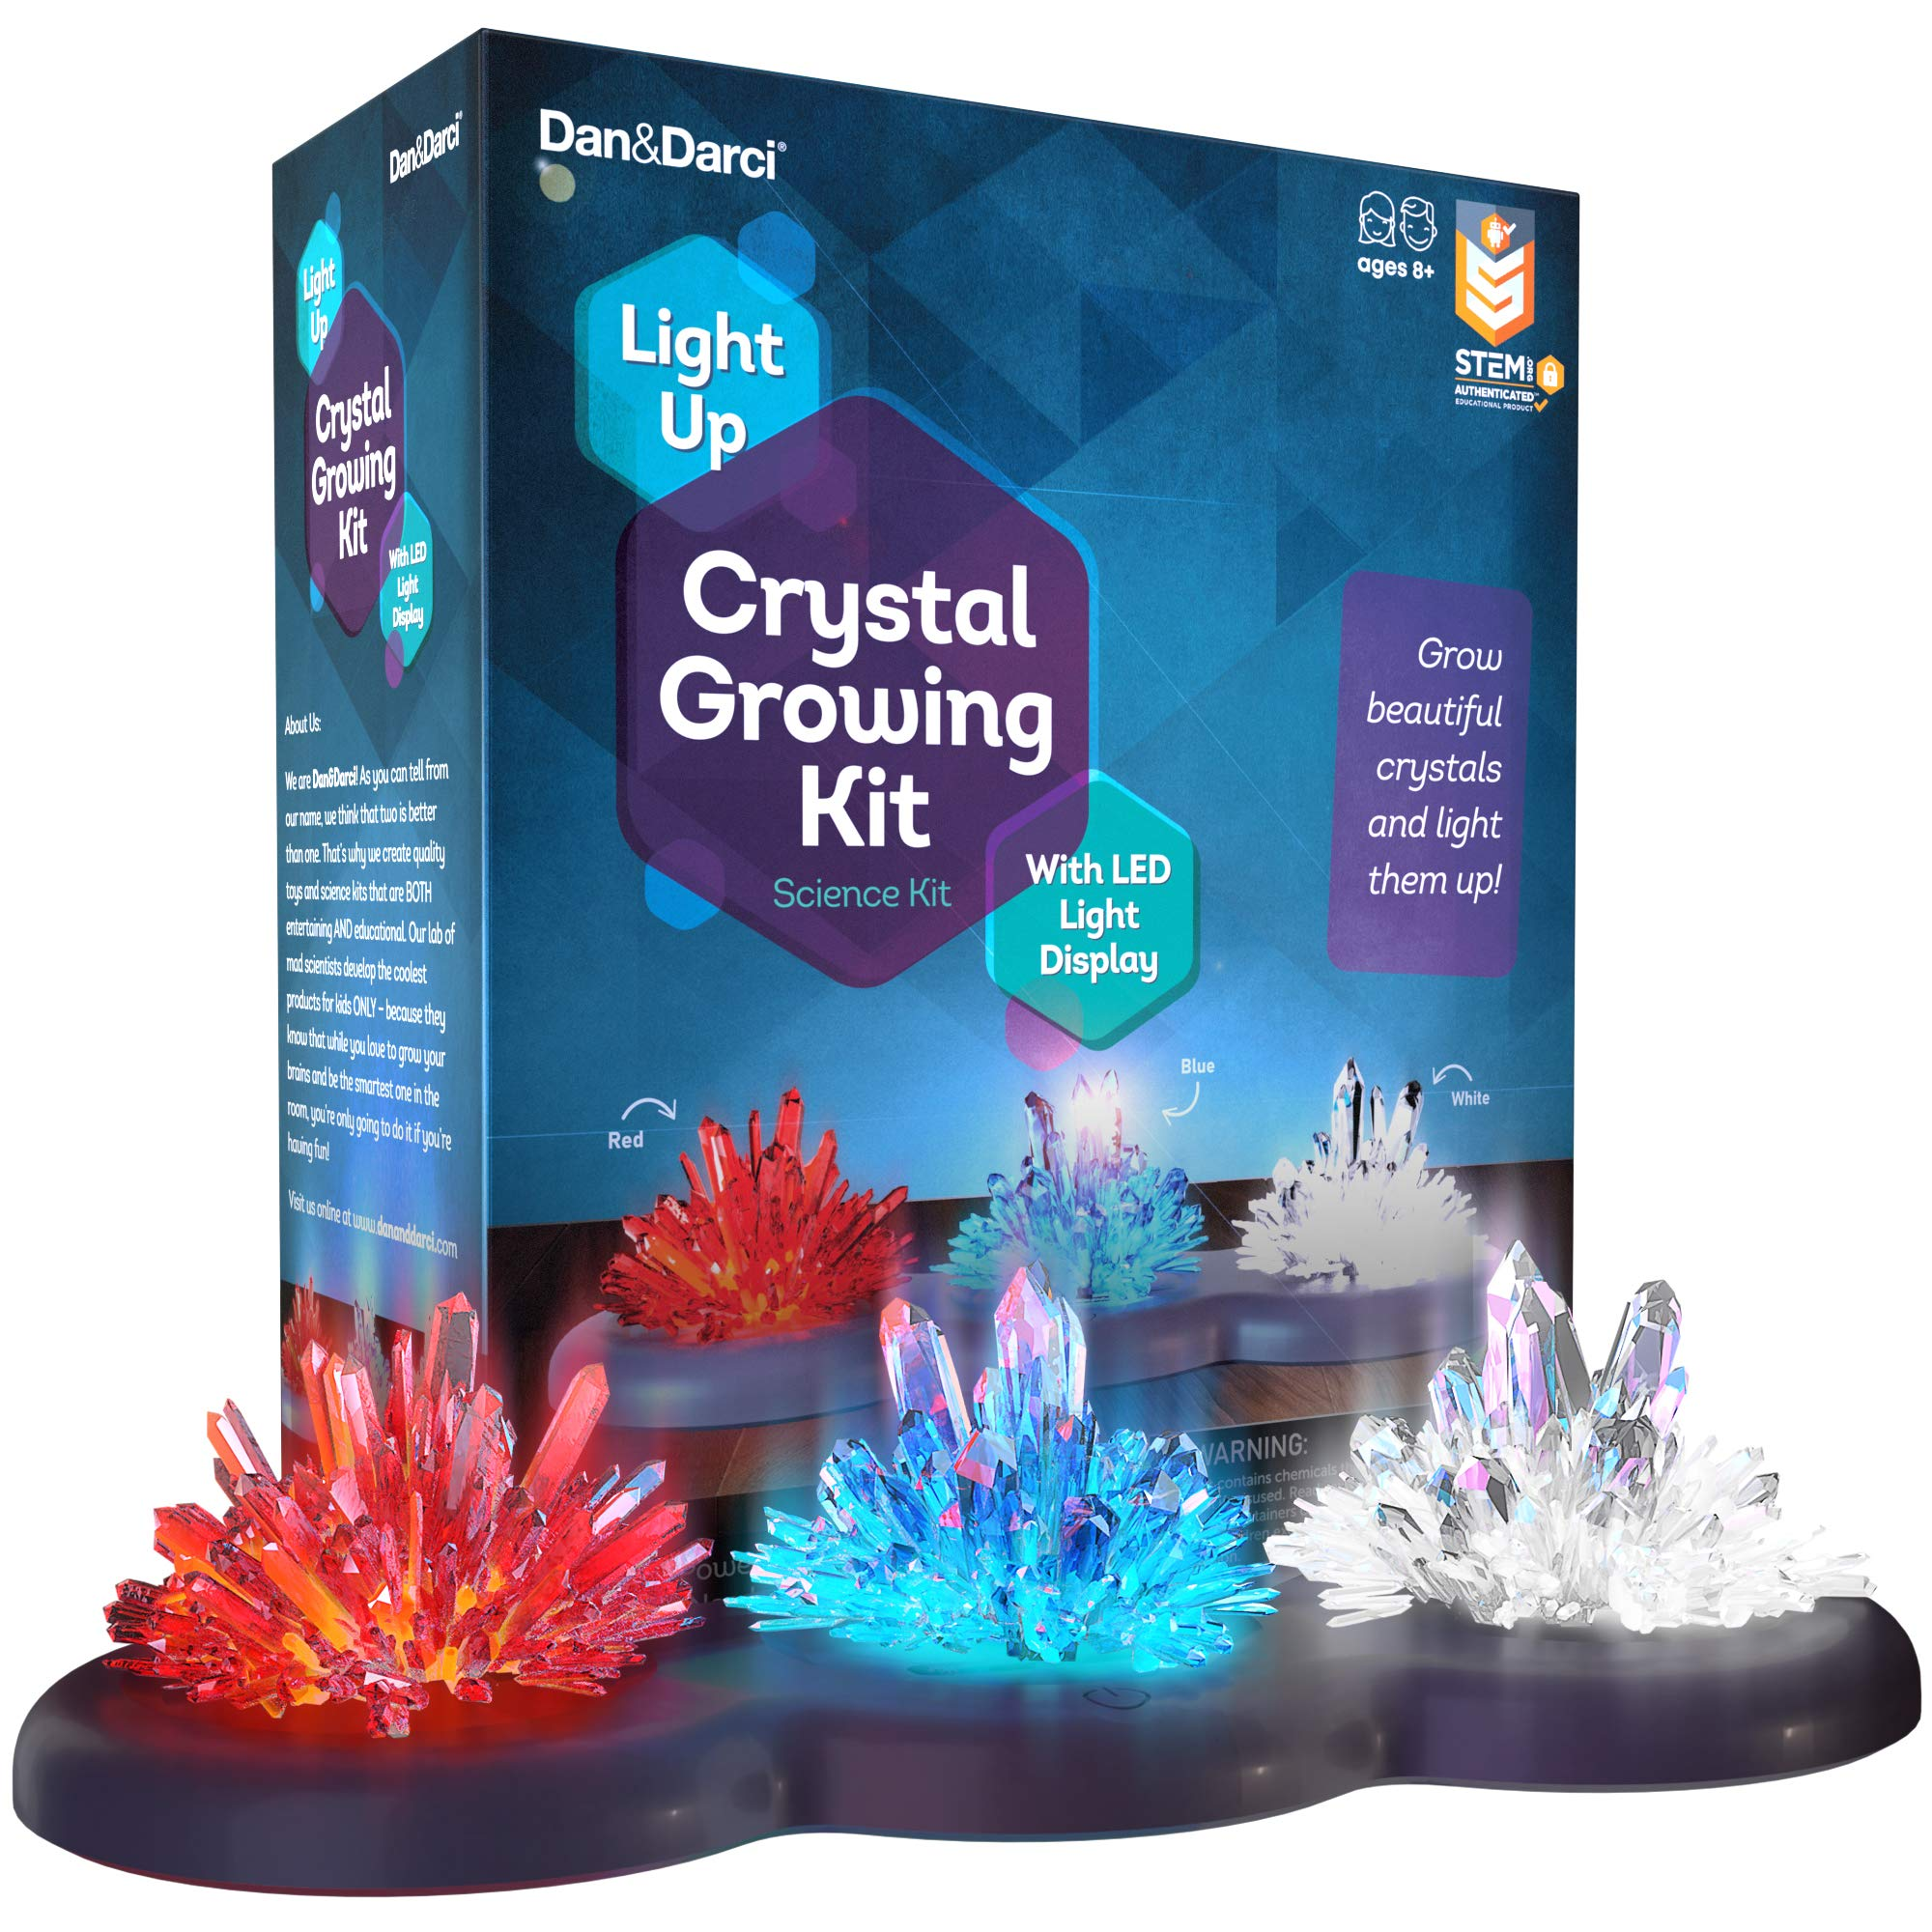 Light-up Crystal Growing Kit for Kids - Grow Your Own Crystals and Make Them Glow : Great Science Experiments Gifts for Kids, Boys & Girls - STEM Toys - Crystal Making Science Kit (Red White Blue) by Dan&Darci